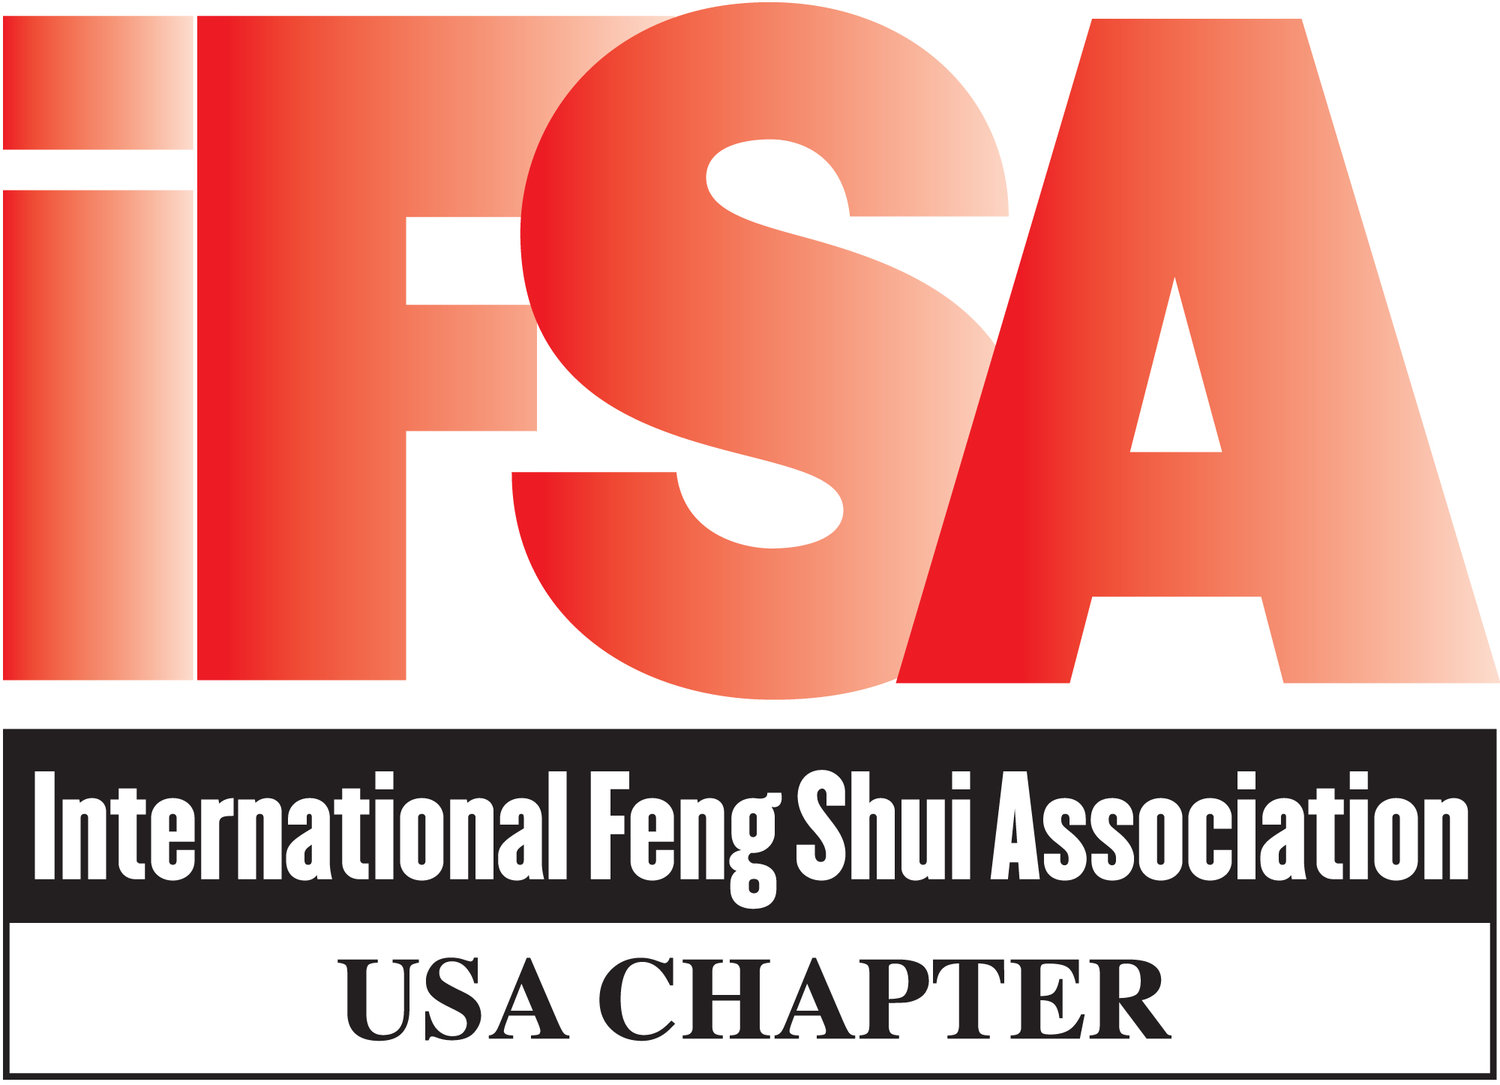 IFSA USA Chapter